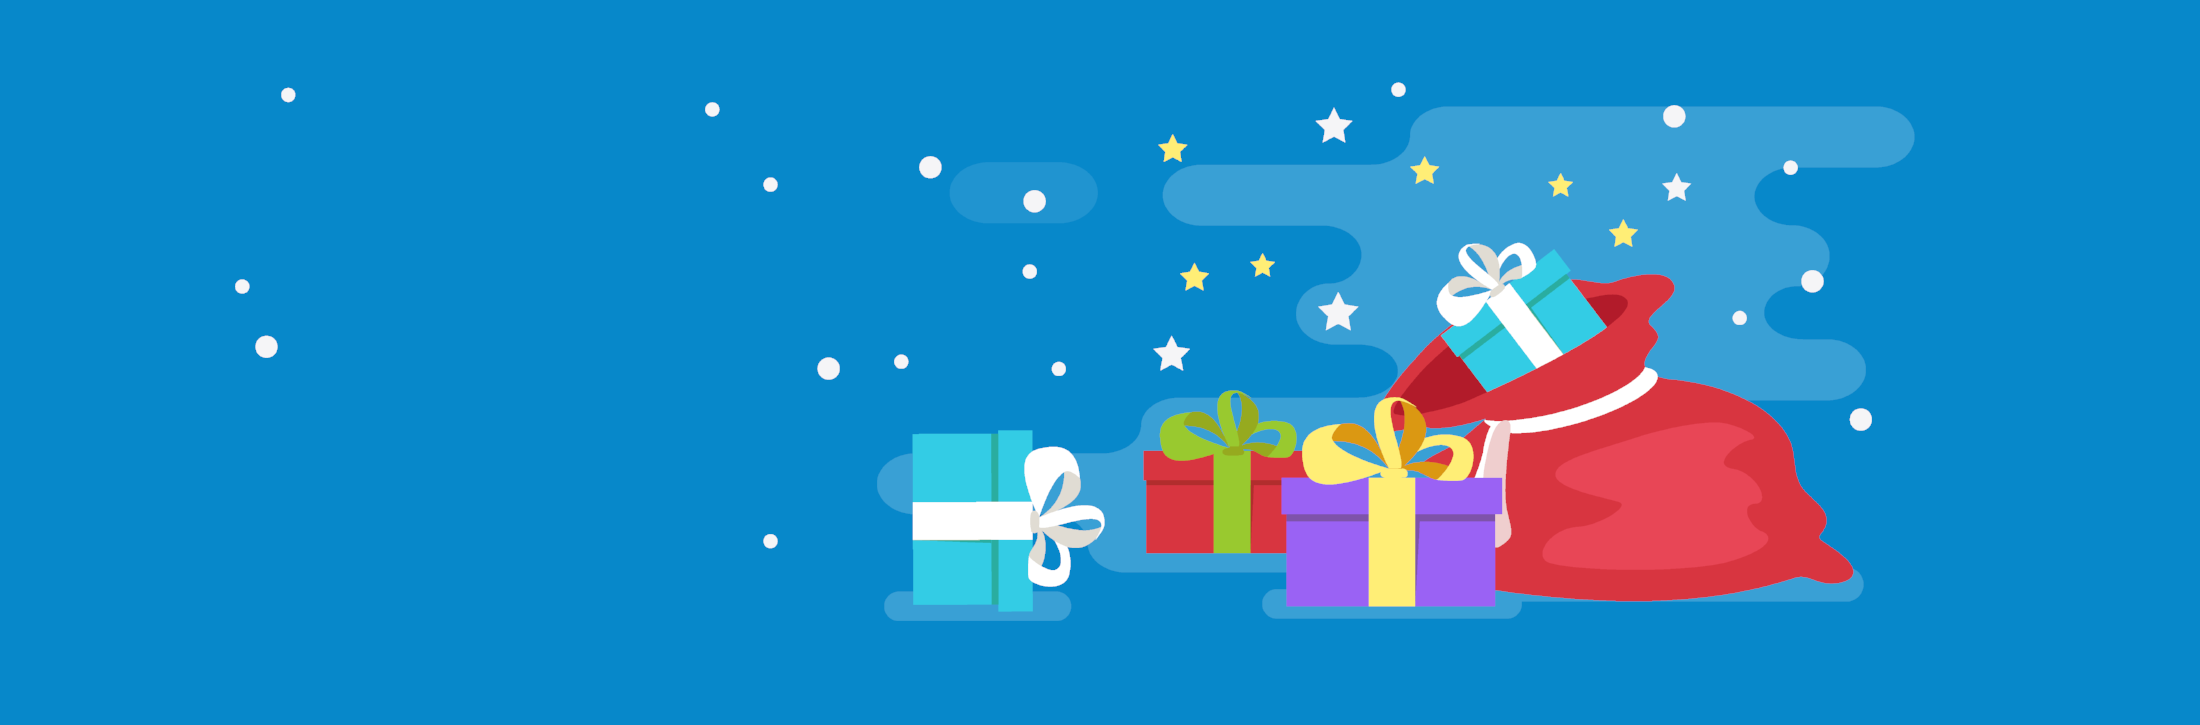 5 must have tech gifts for Christmas 2016